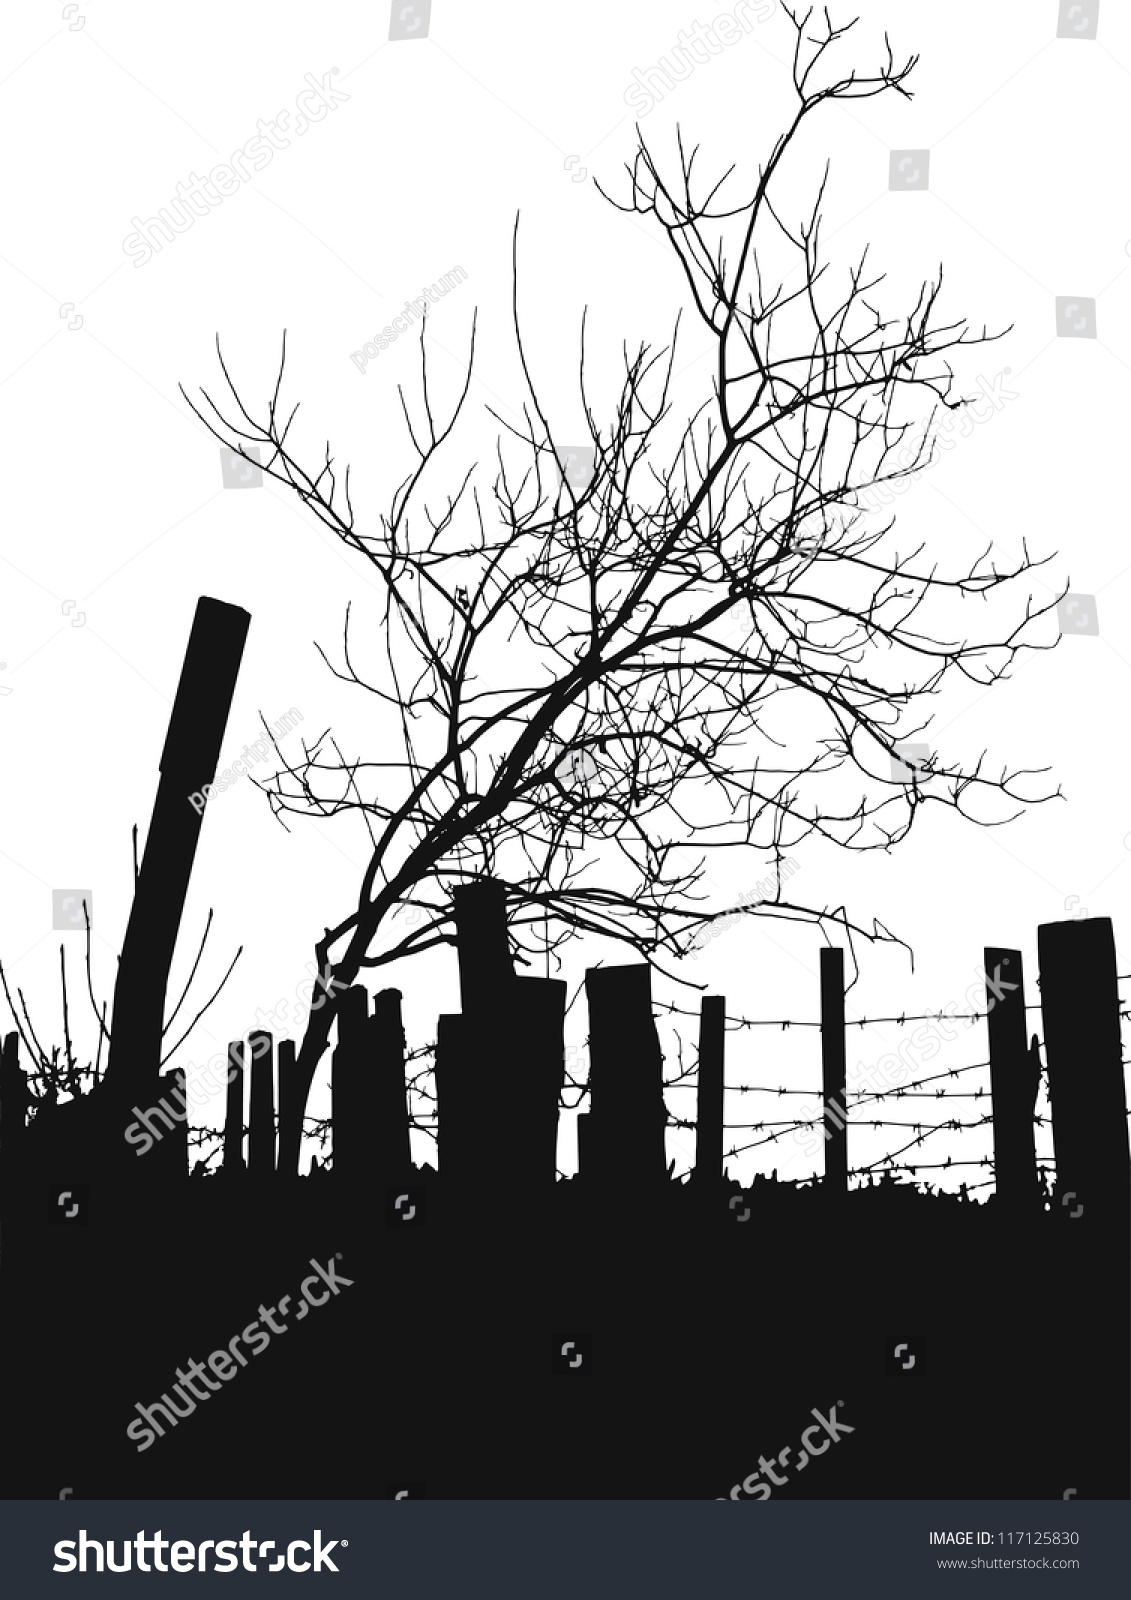 Tree Silhouette Against Fence Barbed Wire Stock Vector 117125830 ...